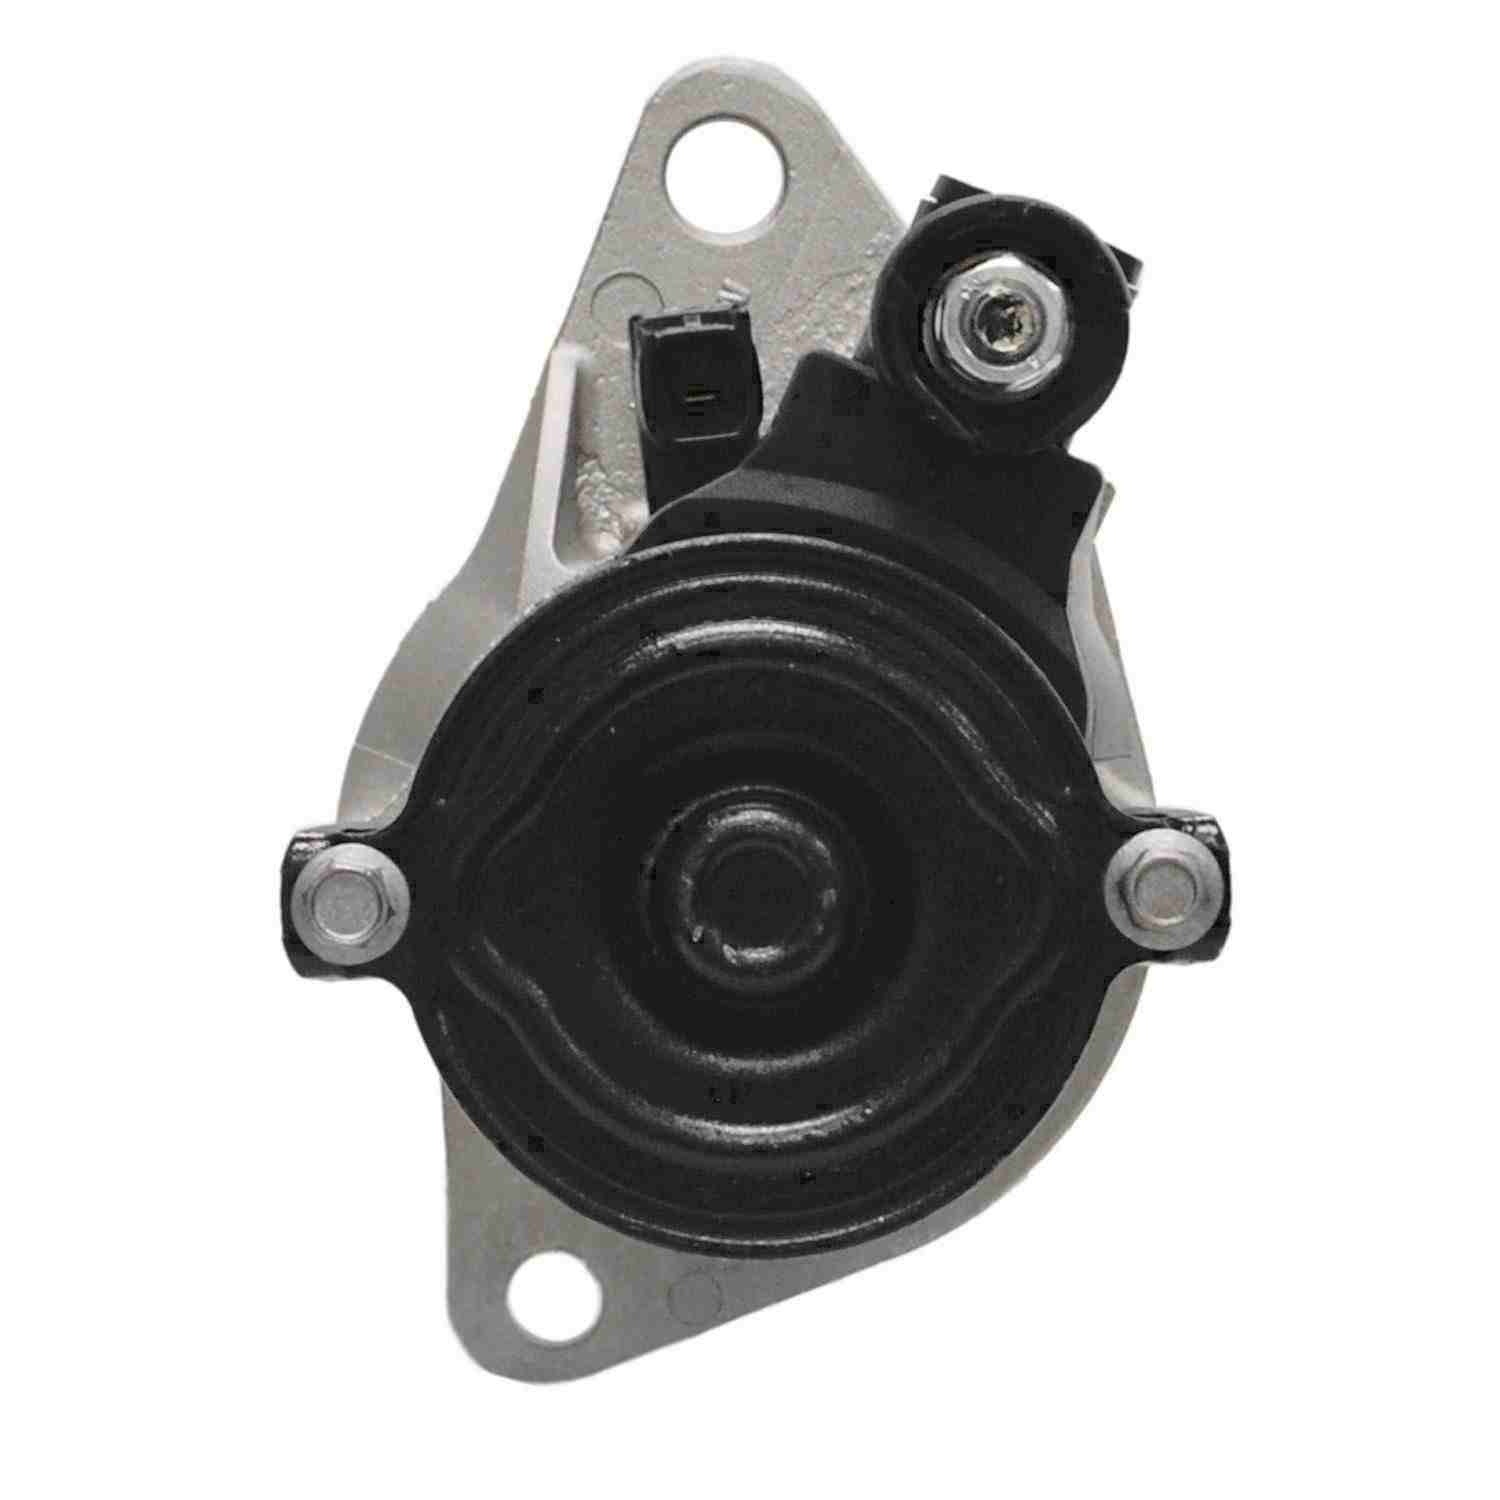 ACDELCO PROFESSIONAL - Reman Starter Motor - DCC 336-2068